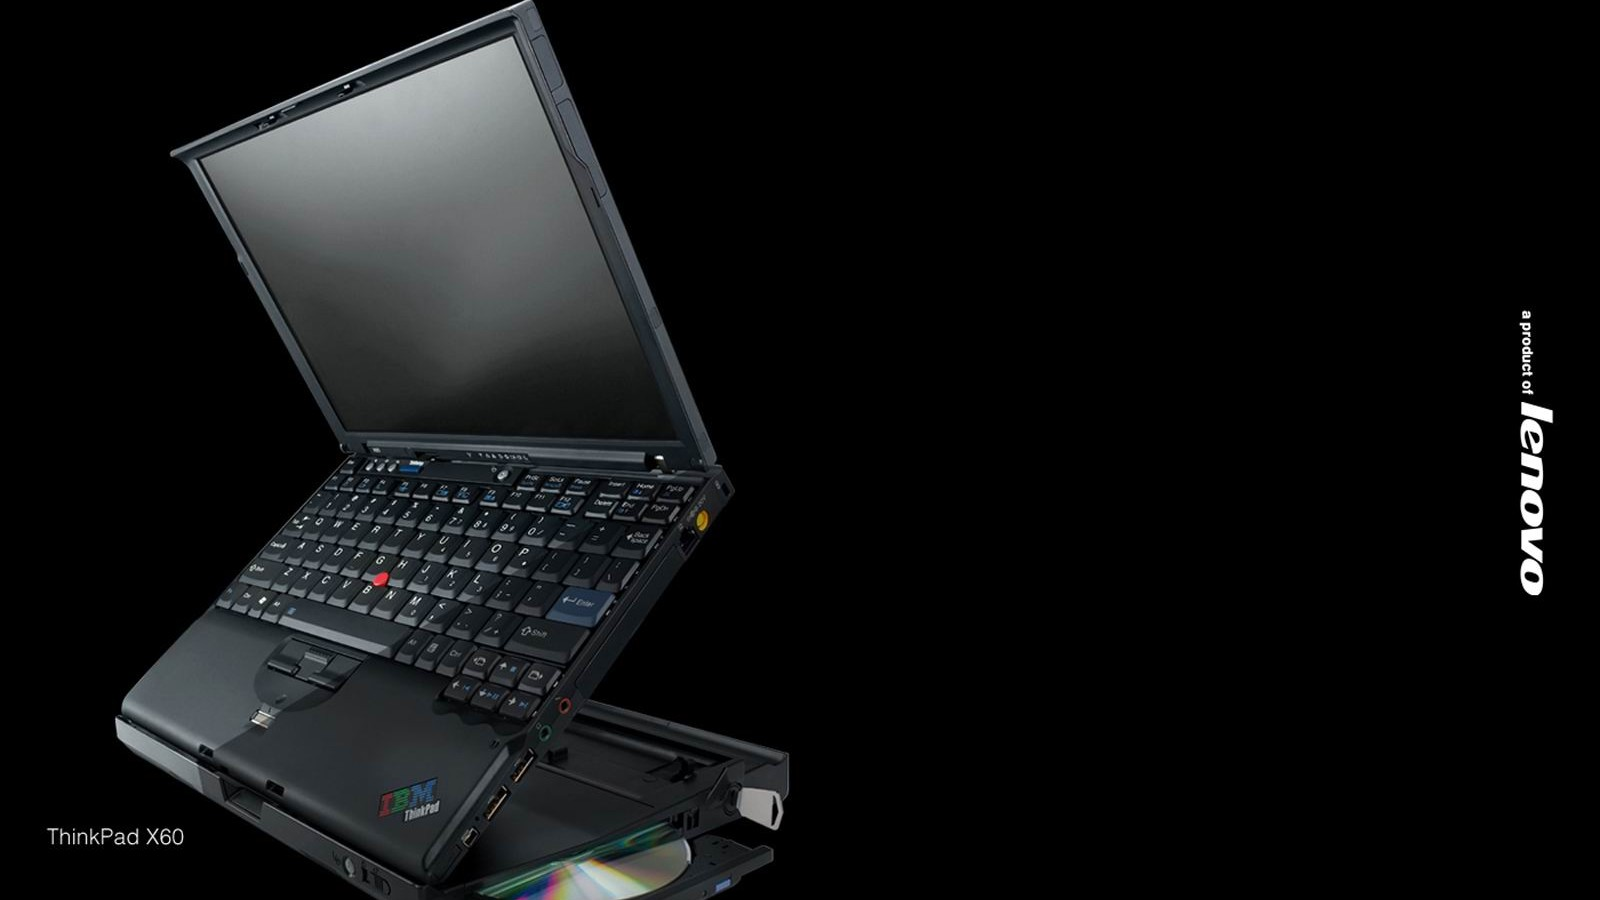 1280x800 wallpaper thinkpad - photo #33